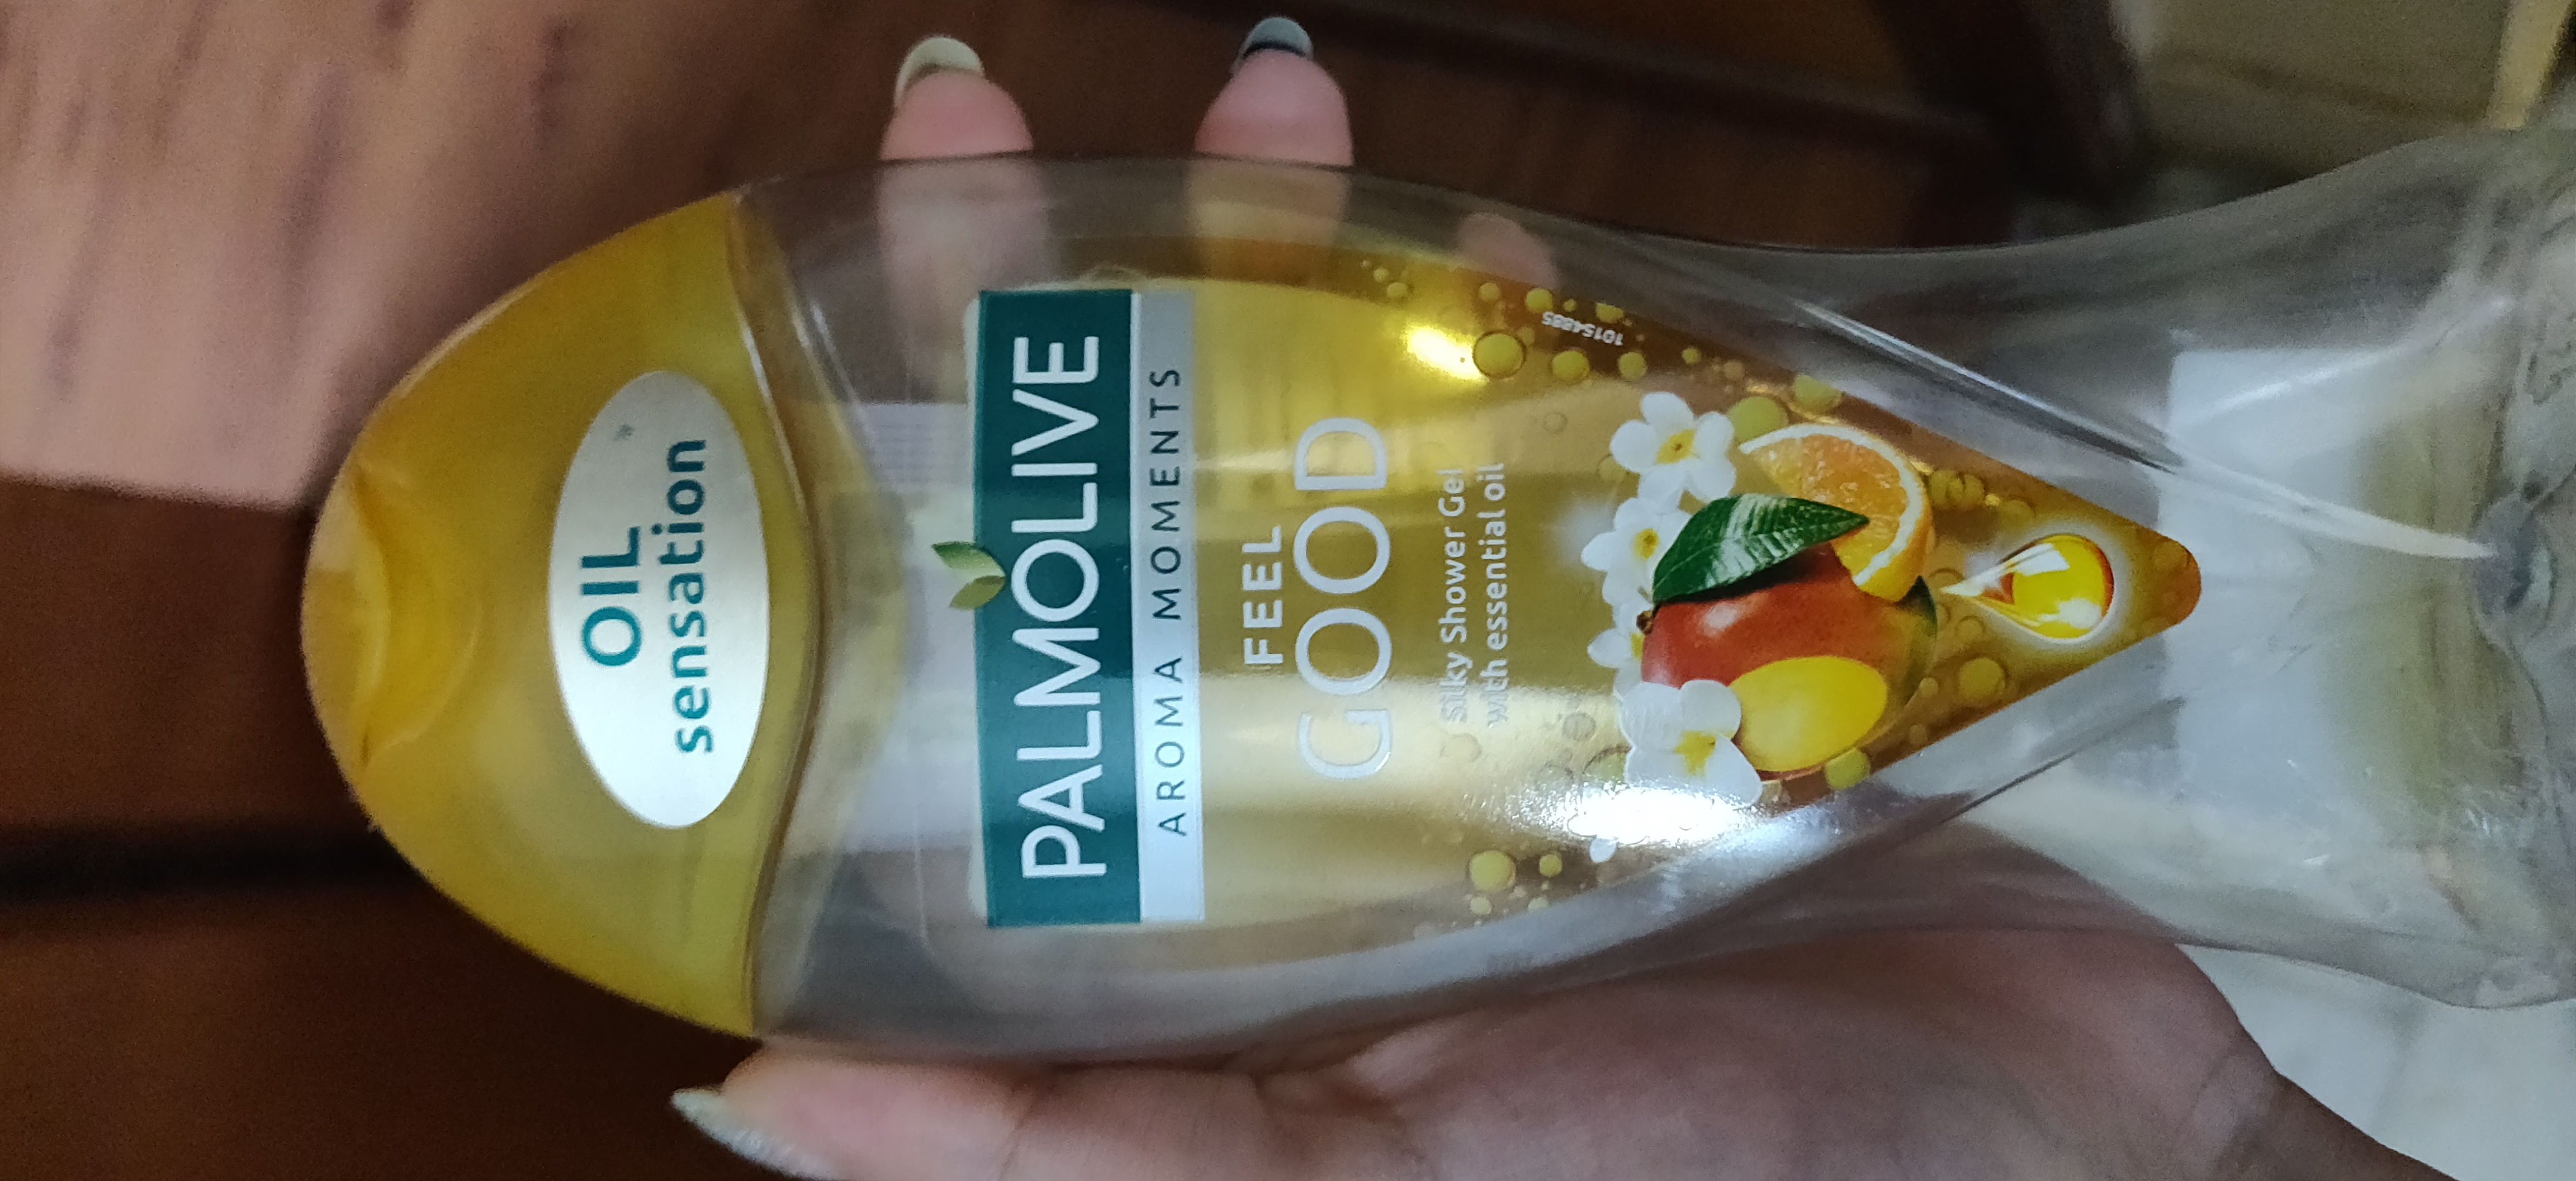 Palmolive Aroma Therapy Absolute Relax Shower Gel-The Best Shower Gel Range-By paridhi5-3